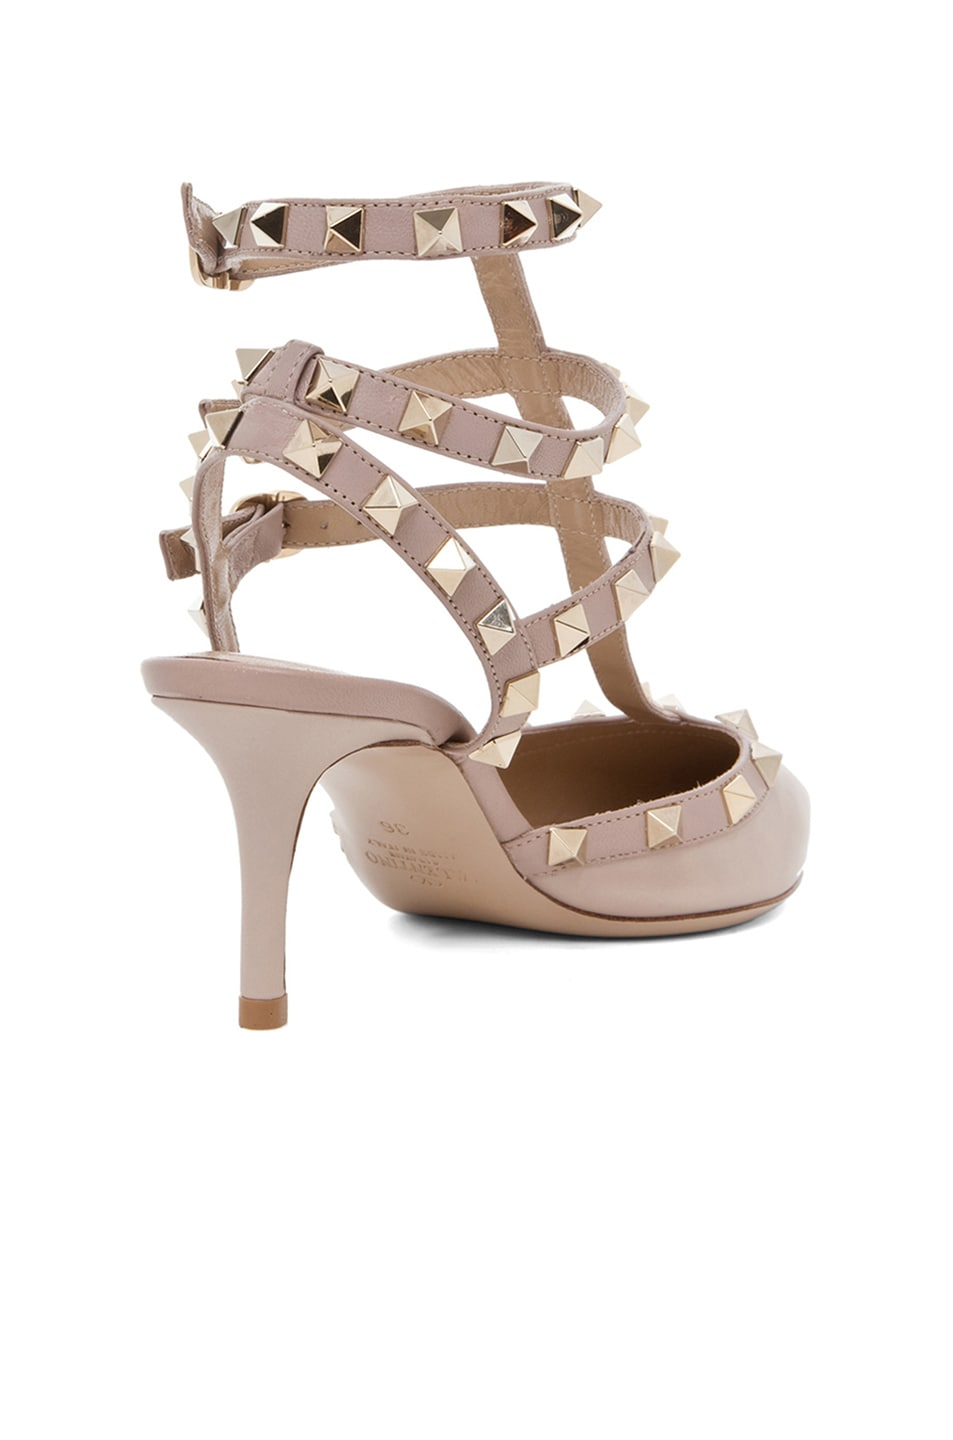 Image 3 of Valentino Rockstud Leather Slingbacks T.65 in Powder